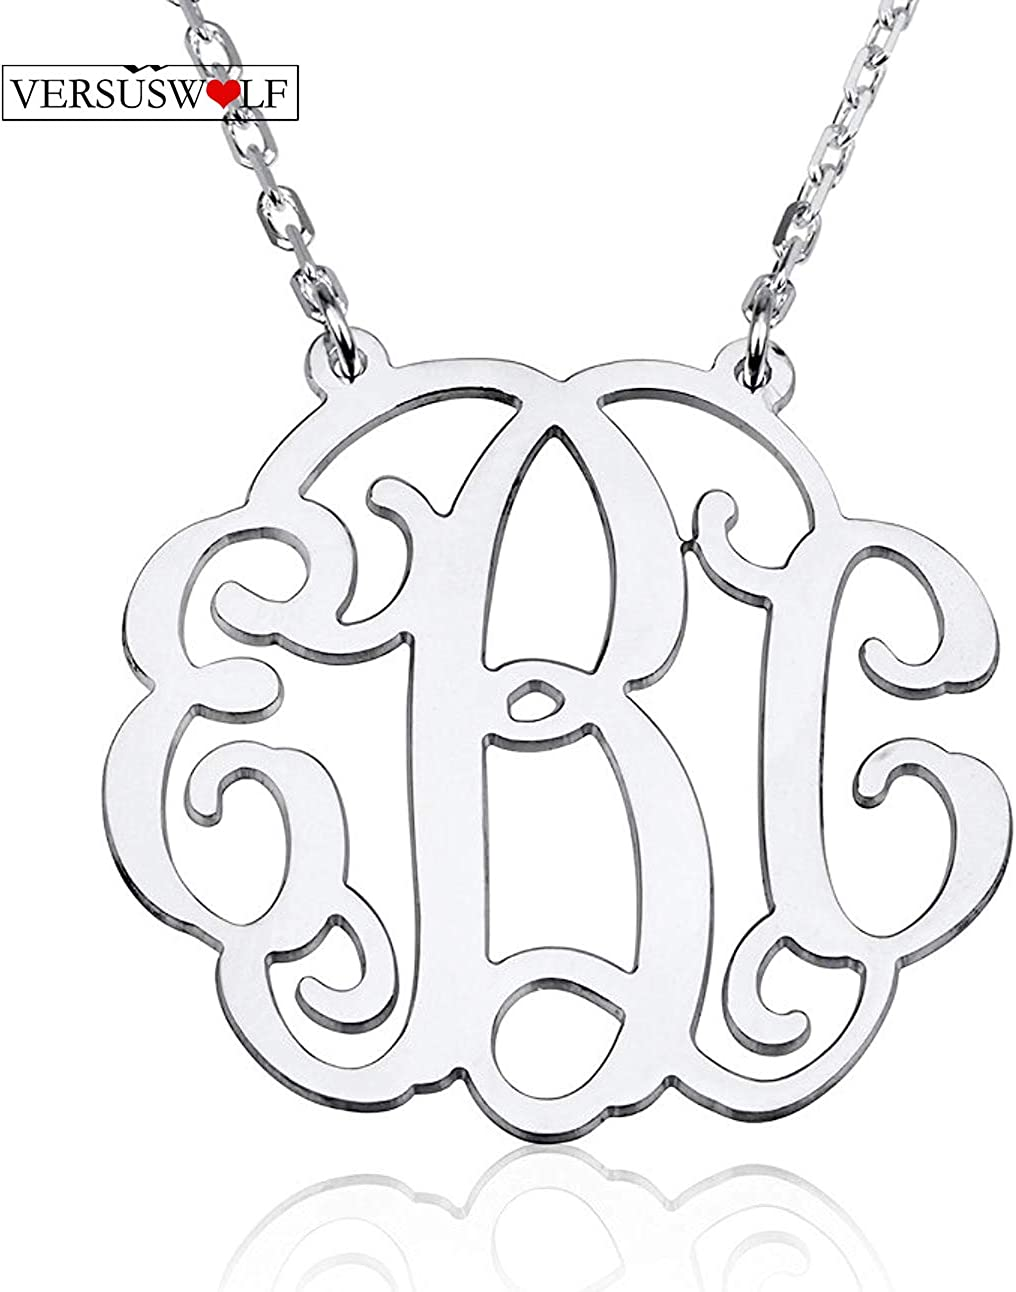 VERSUSWOLF 925 Sterling Silver Personalized Monogram Necklace Custom Made with Any Initials